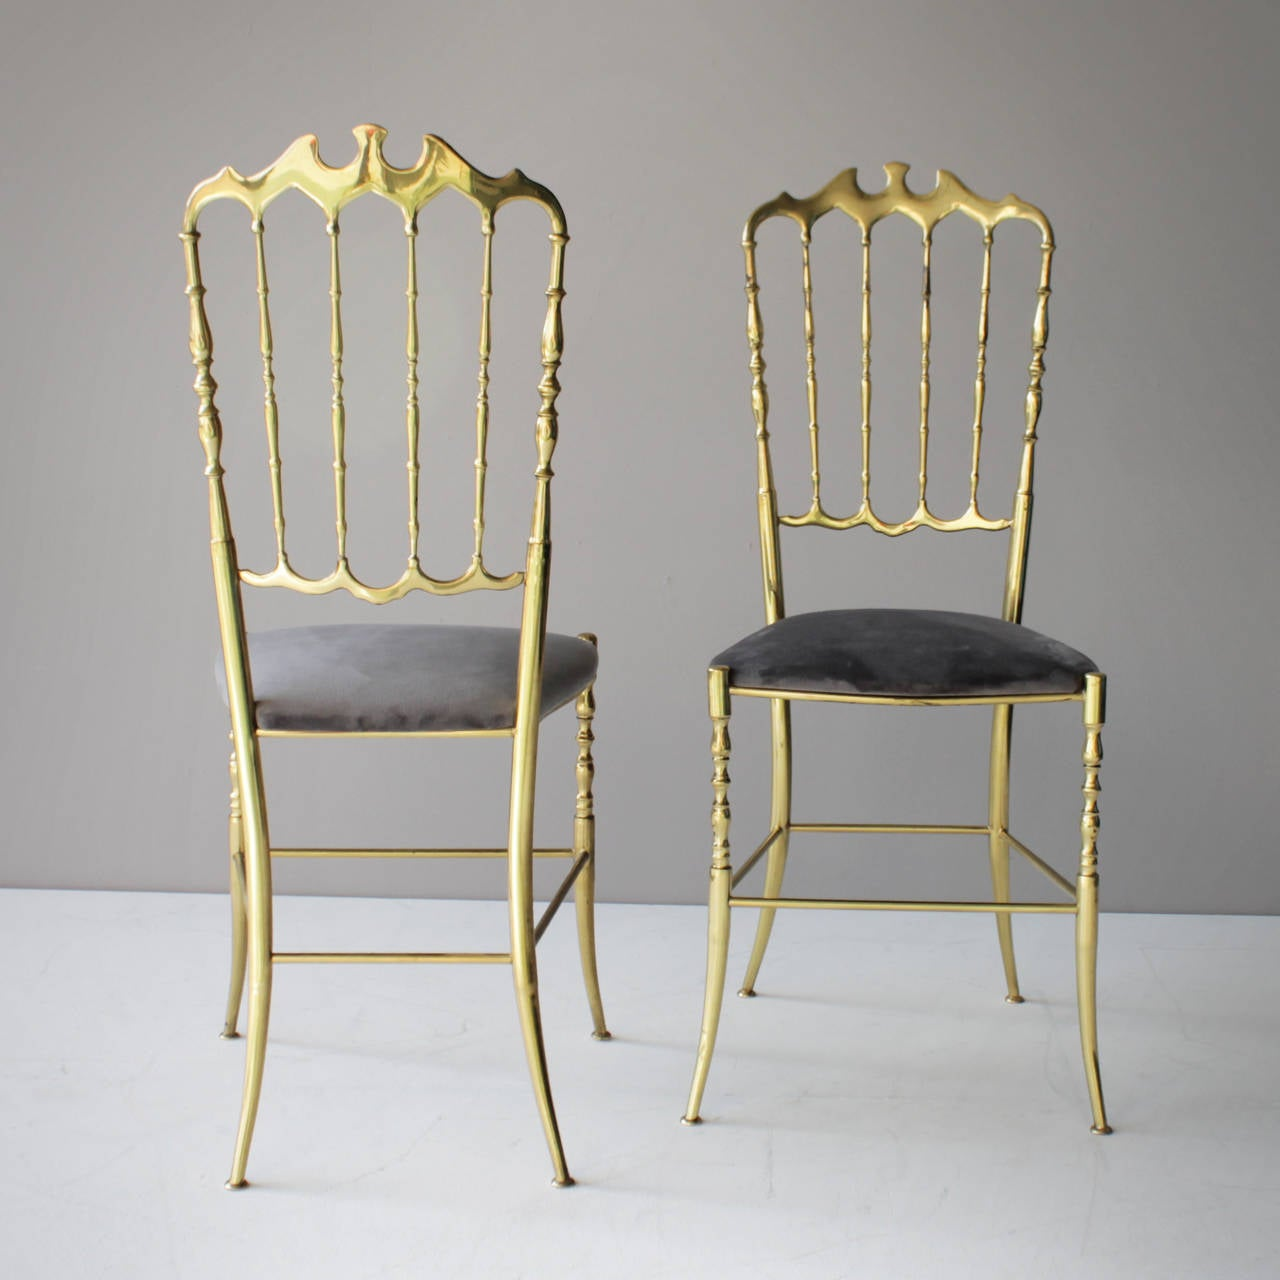 Pair of Brass Italian Chiavari Chairs For Sale at 1stdibs